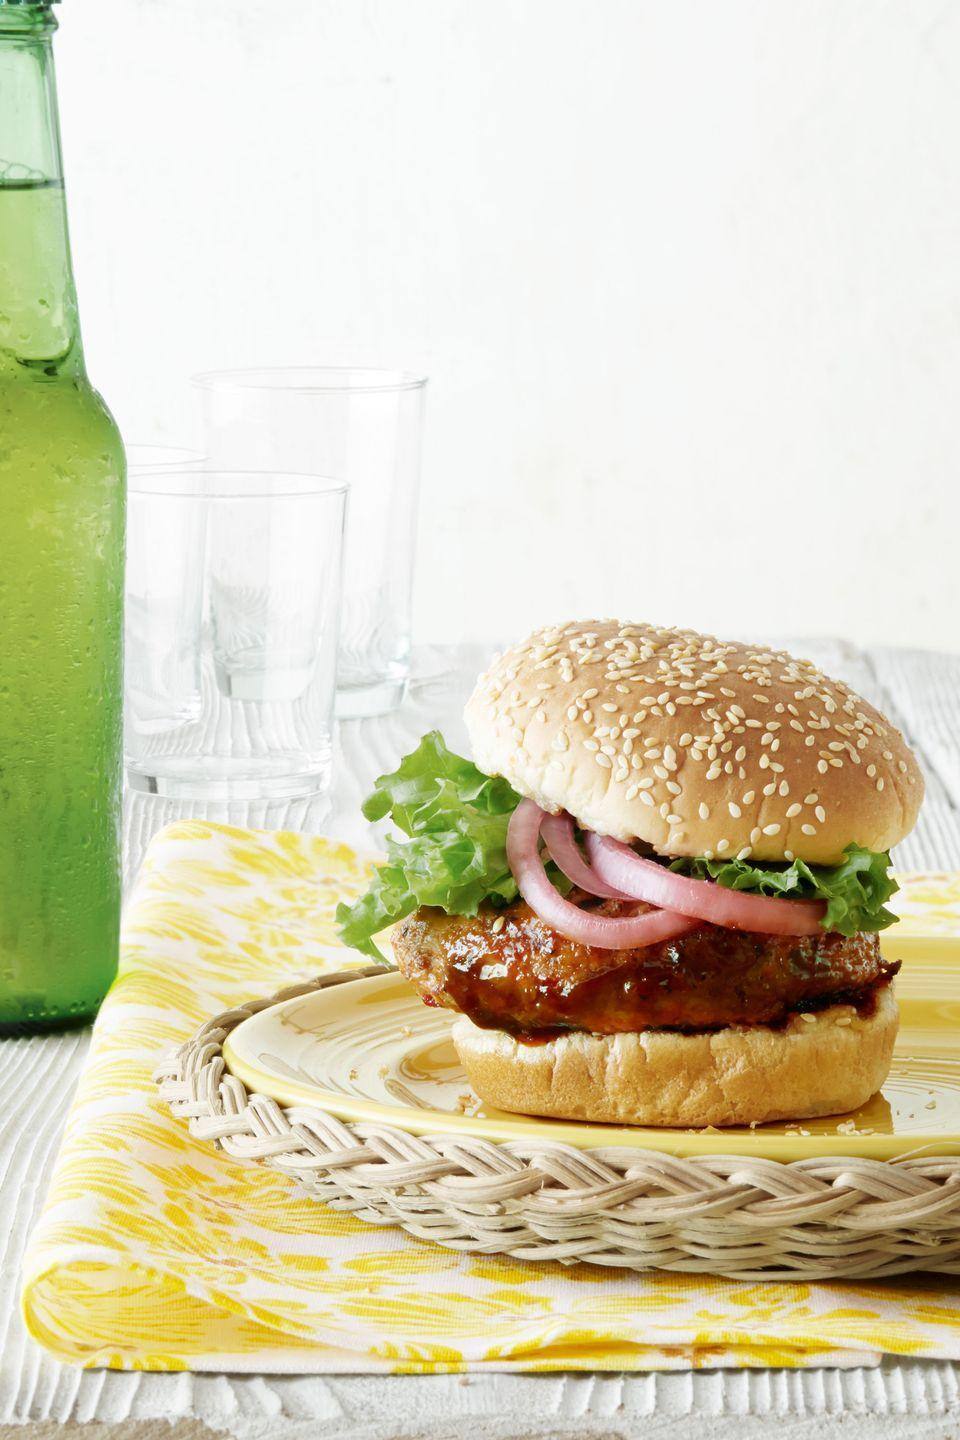 """<p>Tart, tangy, and sweet, pickled red onions and Chinese hoisin sauce make a surprisingly flavorful but simple topping for lean chicken burgers.</p><p><strong><a href=""""https://www.countryliving.com/food-drinks/recipes/a4211/hoisin-chicken-burgers-pickled-red-onions-recipe-clv0813/"""" rel=""""nofollow noopener"""" target=""""_blank"""" data-ylk=""""slk:Get the recipe"""" class=""""link rapid-noclick-resp"""">Get the recipe</a>.</strong></p>"""